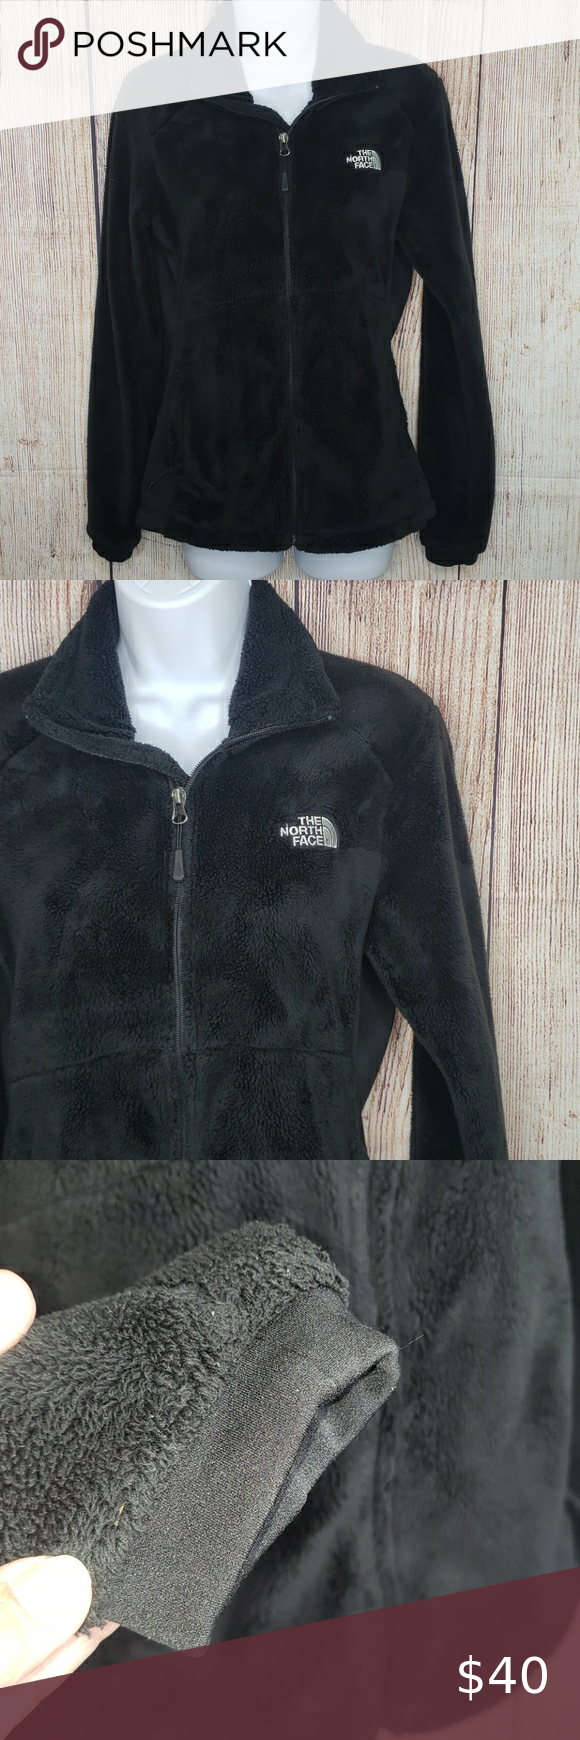 The North Face Fuzzy Jacket Fuzzy Jacket The North Face Black North Face [ 1740 x 580 Pixel ]